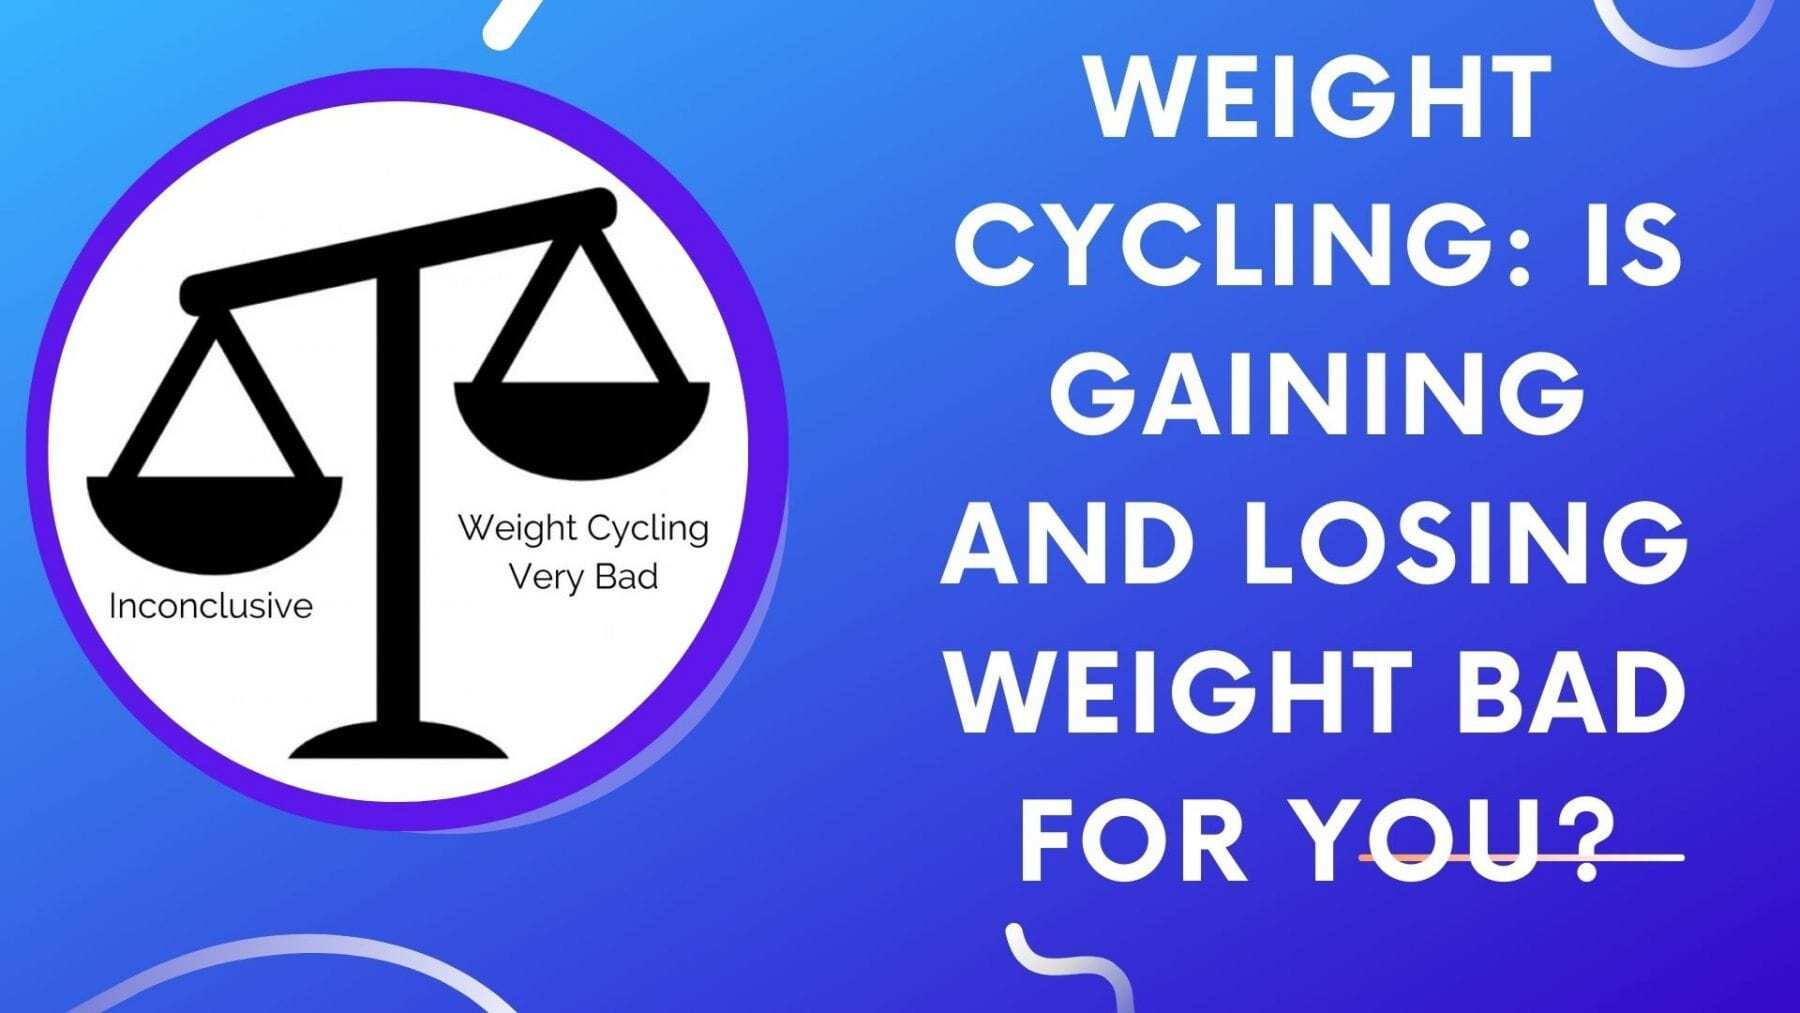 Weight Cycling Is Gaining and Losing Weight Bad For You_